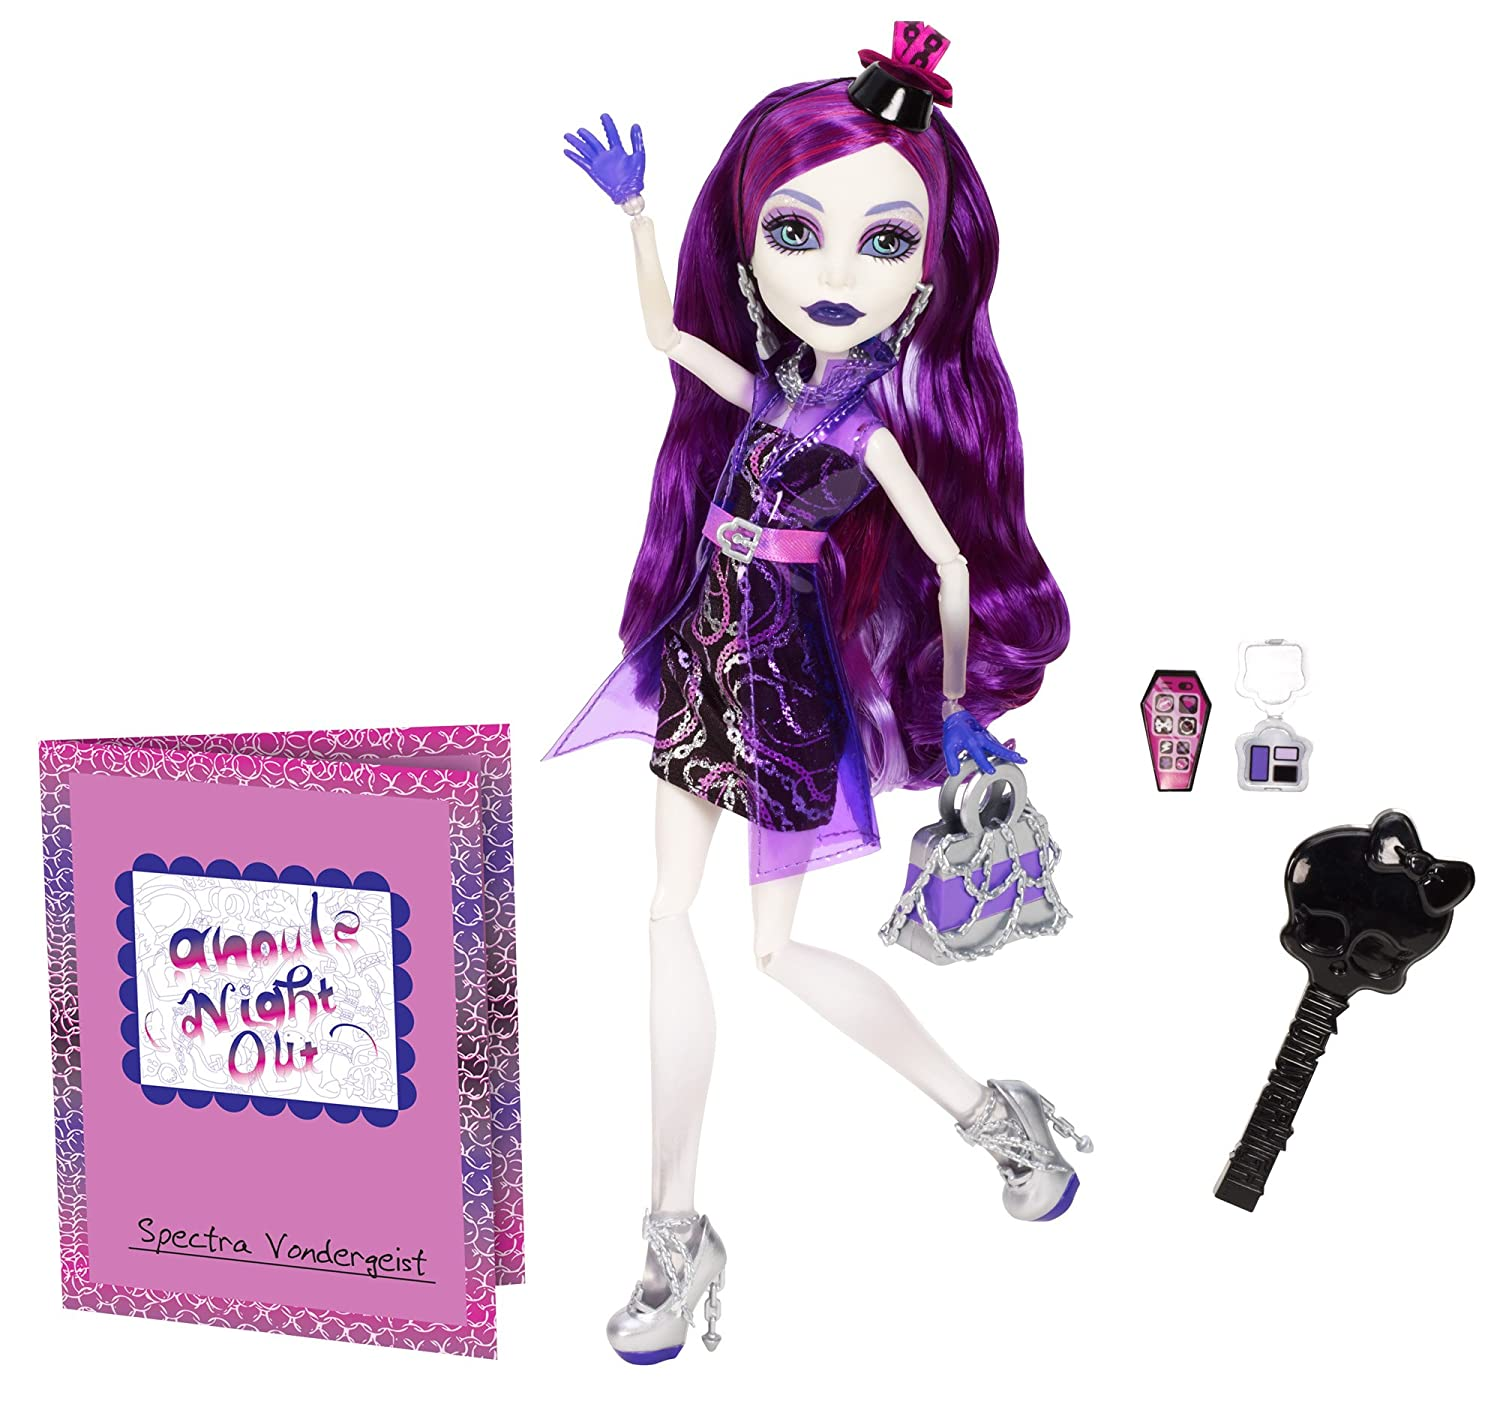 Uncategorized Monster High Spectra Doll amazon com monster high ghouls night out doll spectra vondergeist toys games